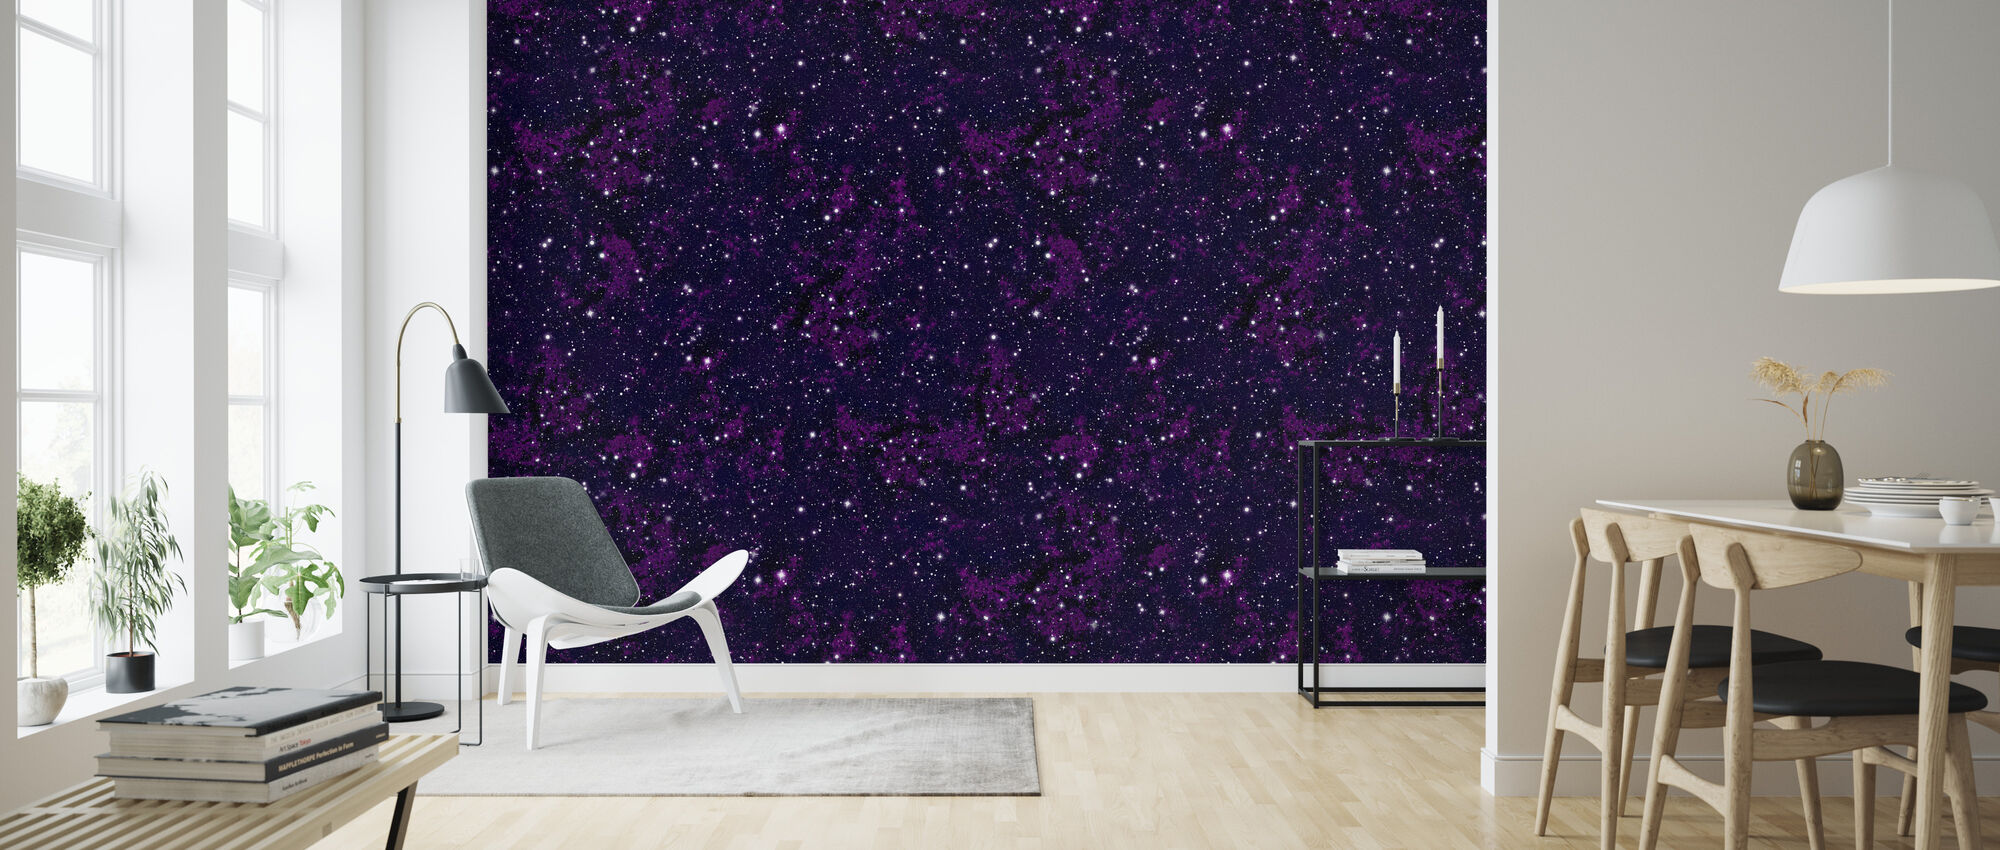 Purps - Wallpaper - Living Room